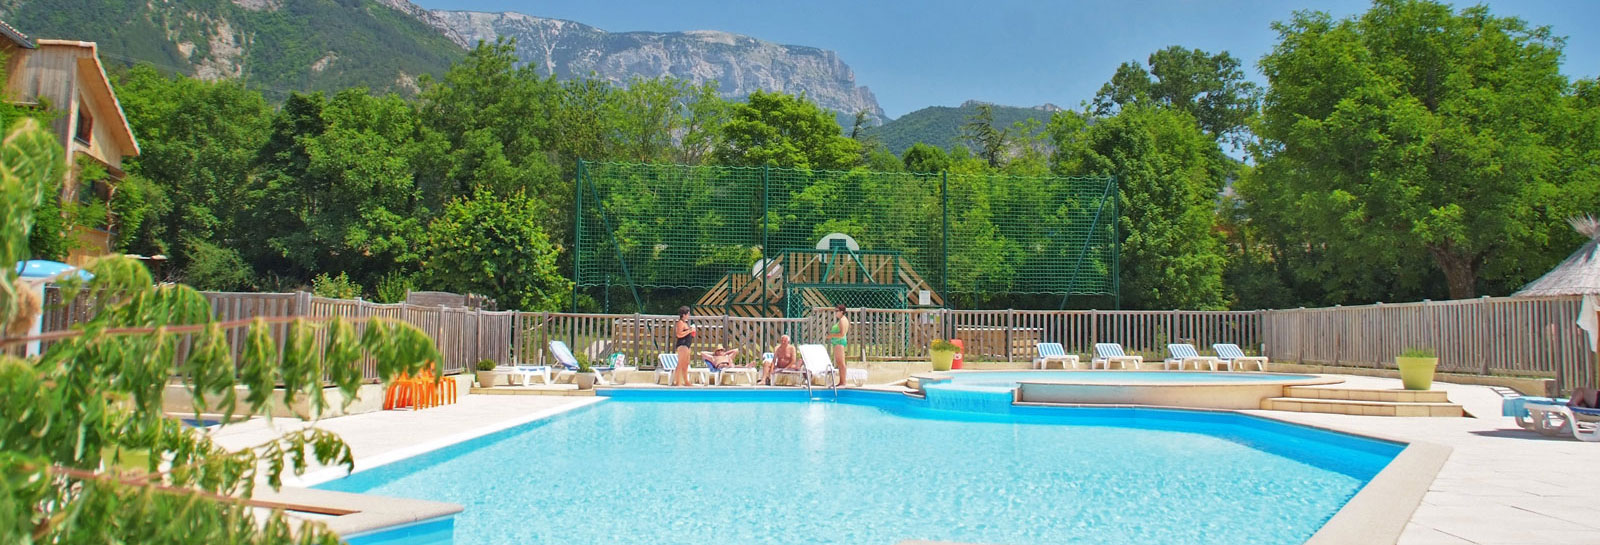 Camping le glandasse camping caravaning drome piscine for Camping drome provencale avec piscine